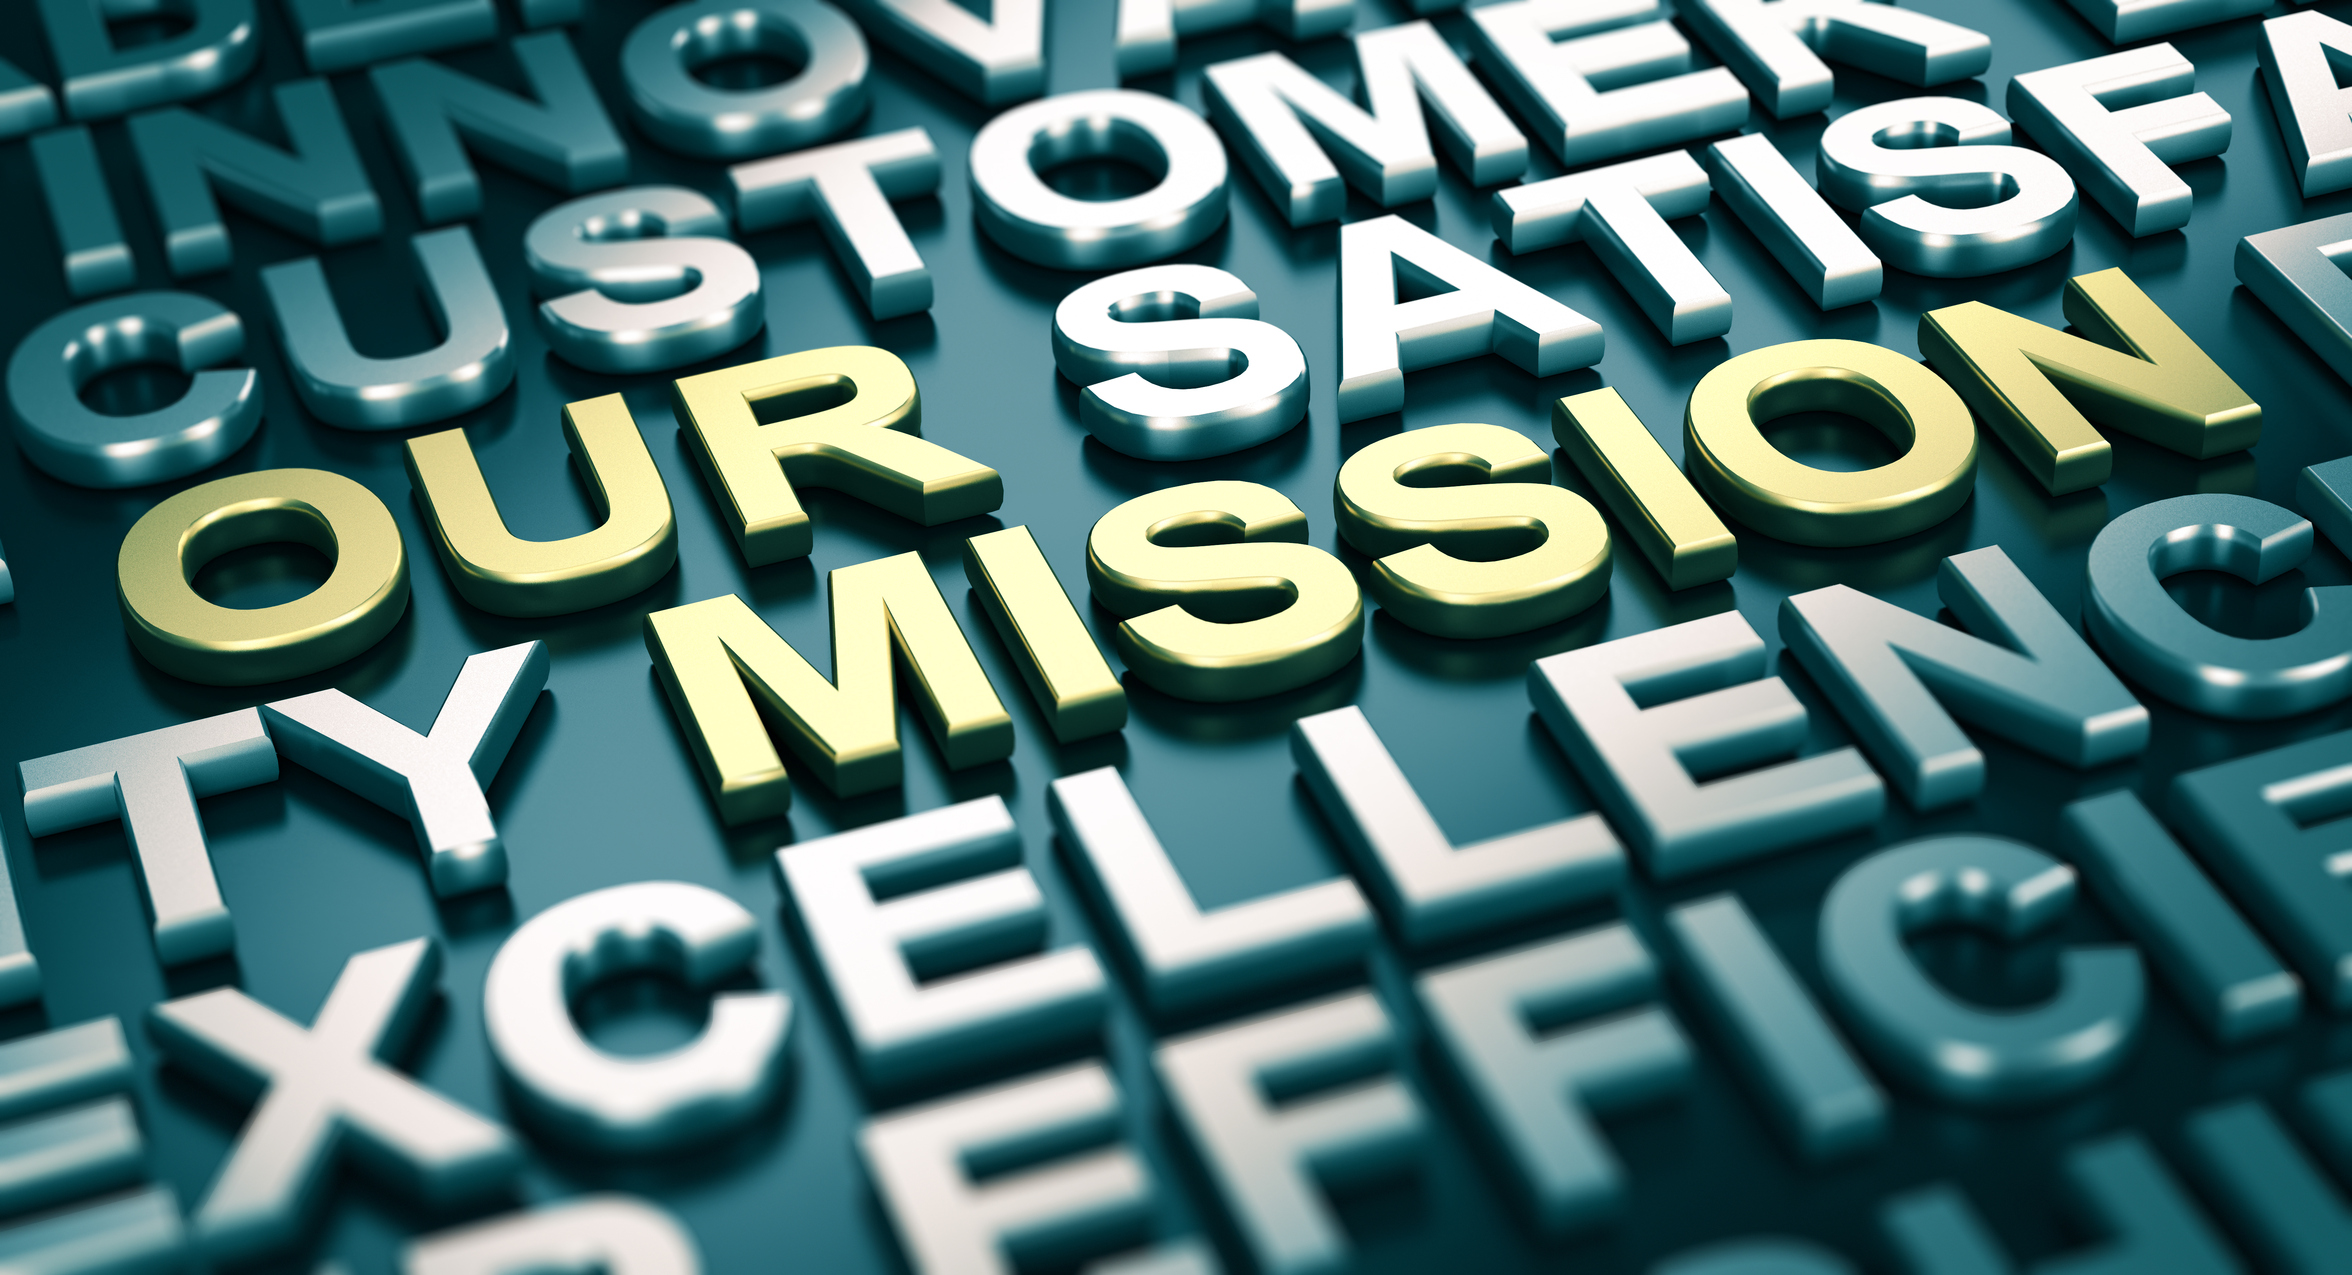 Can A Nonprofit Change Its Mission Statement?